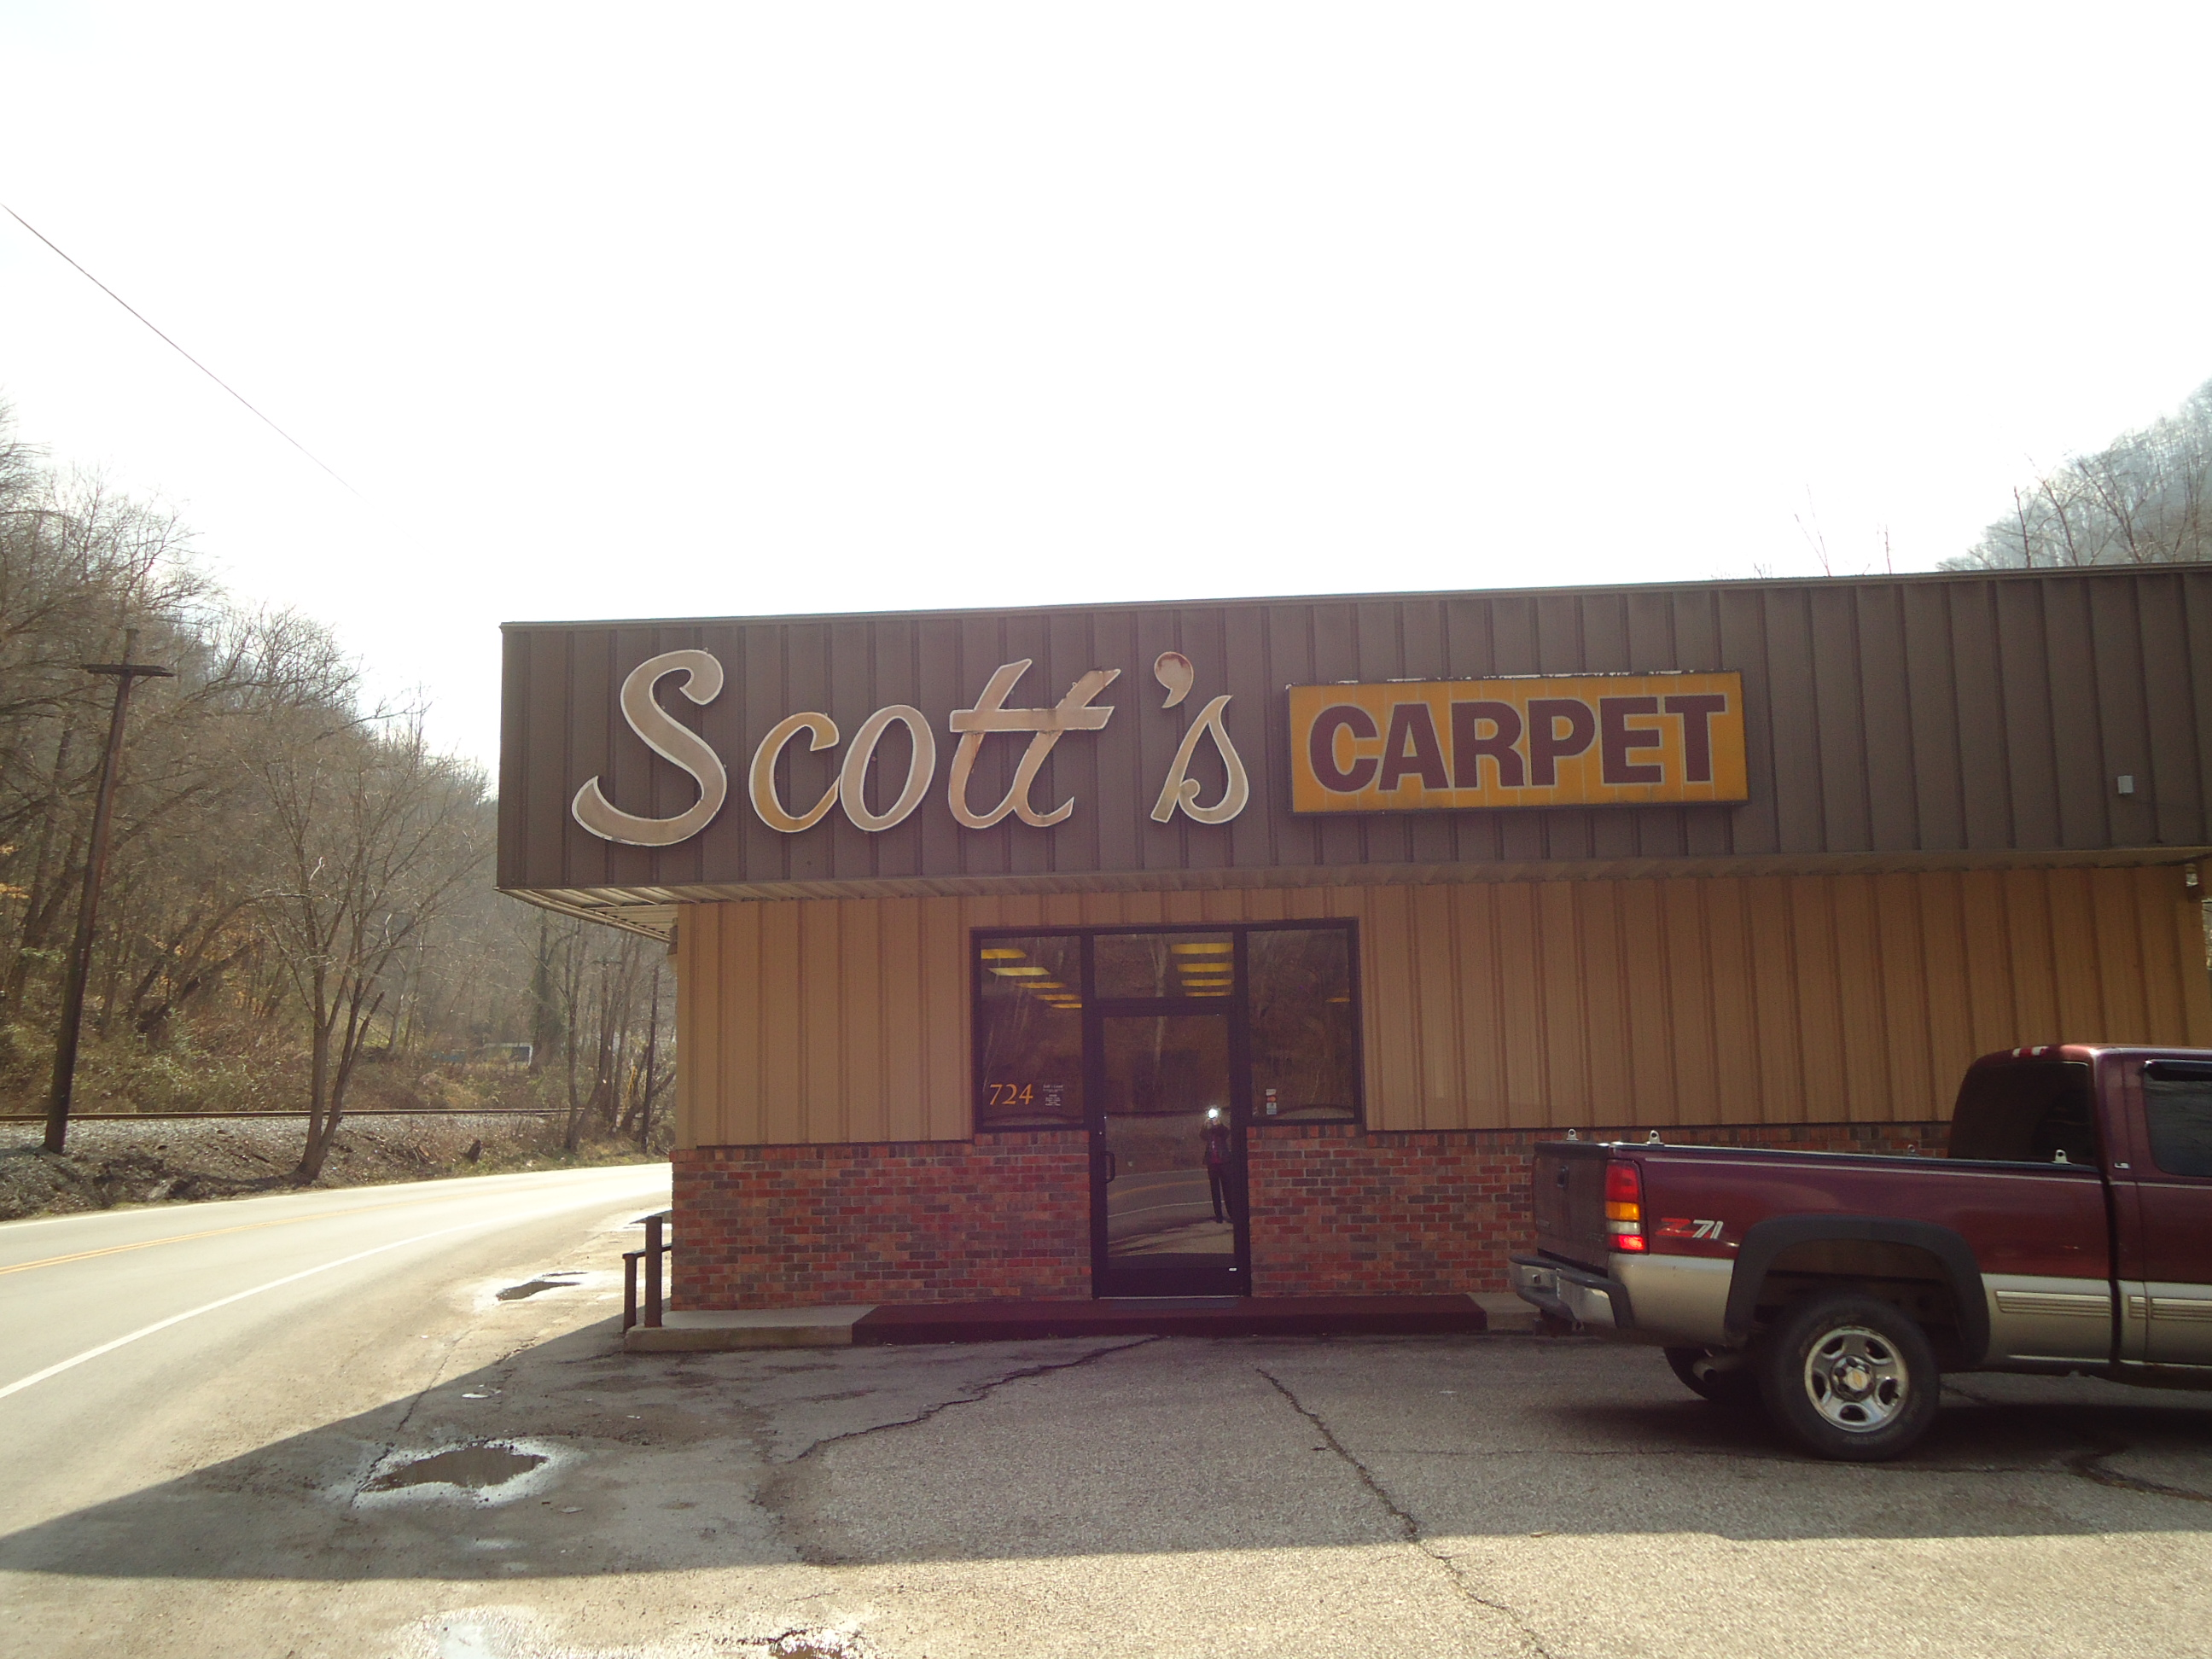 724 Jerry West Hwy., Logan, West Virginia 25601